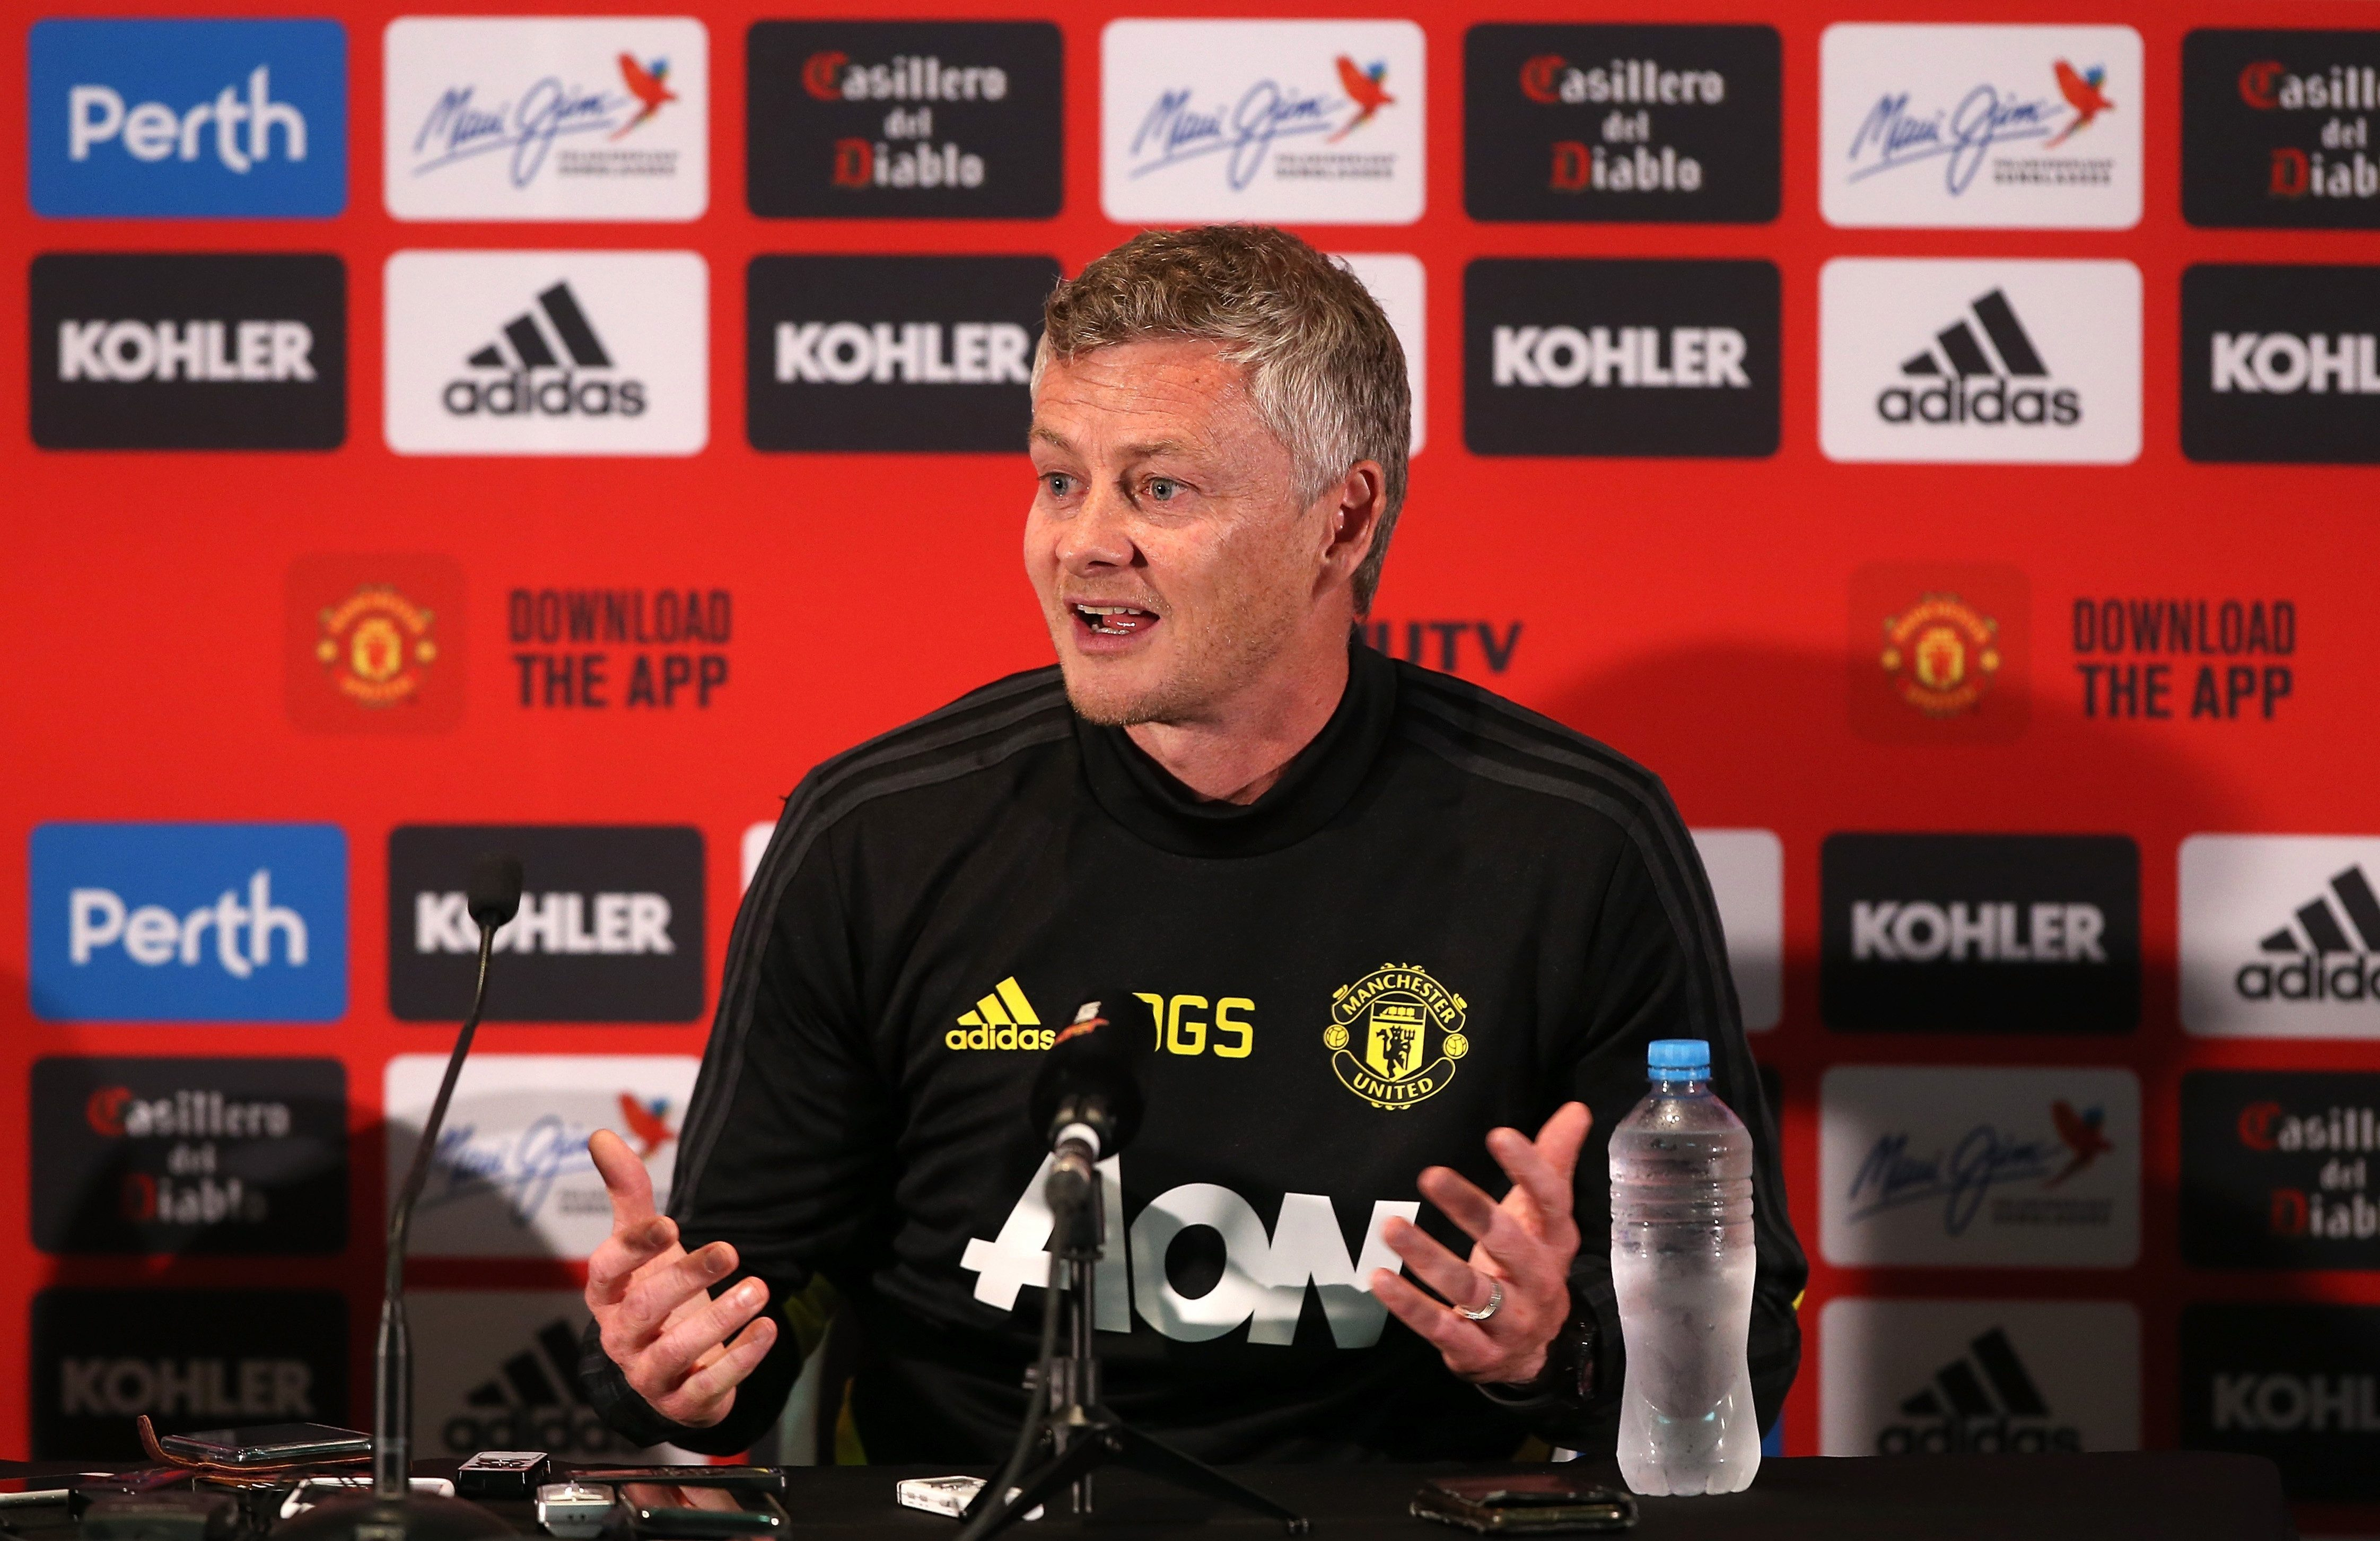 Ole Gunnar Solskjaer was speaking to media in Perth and said the club are in no need to sell players